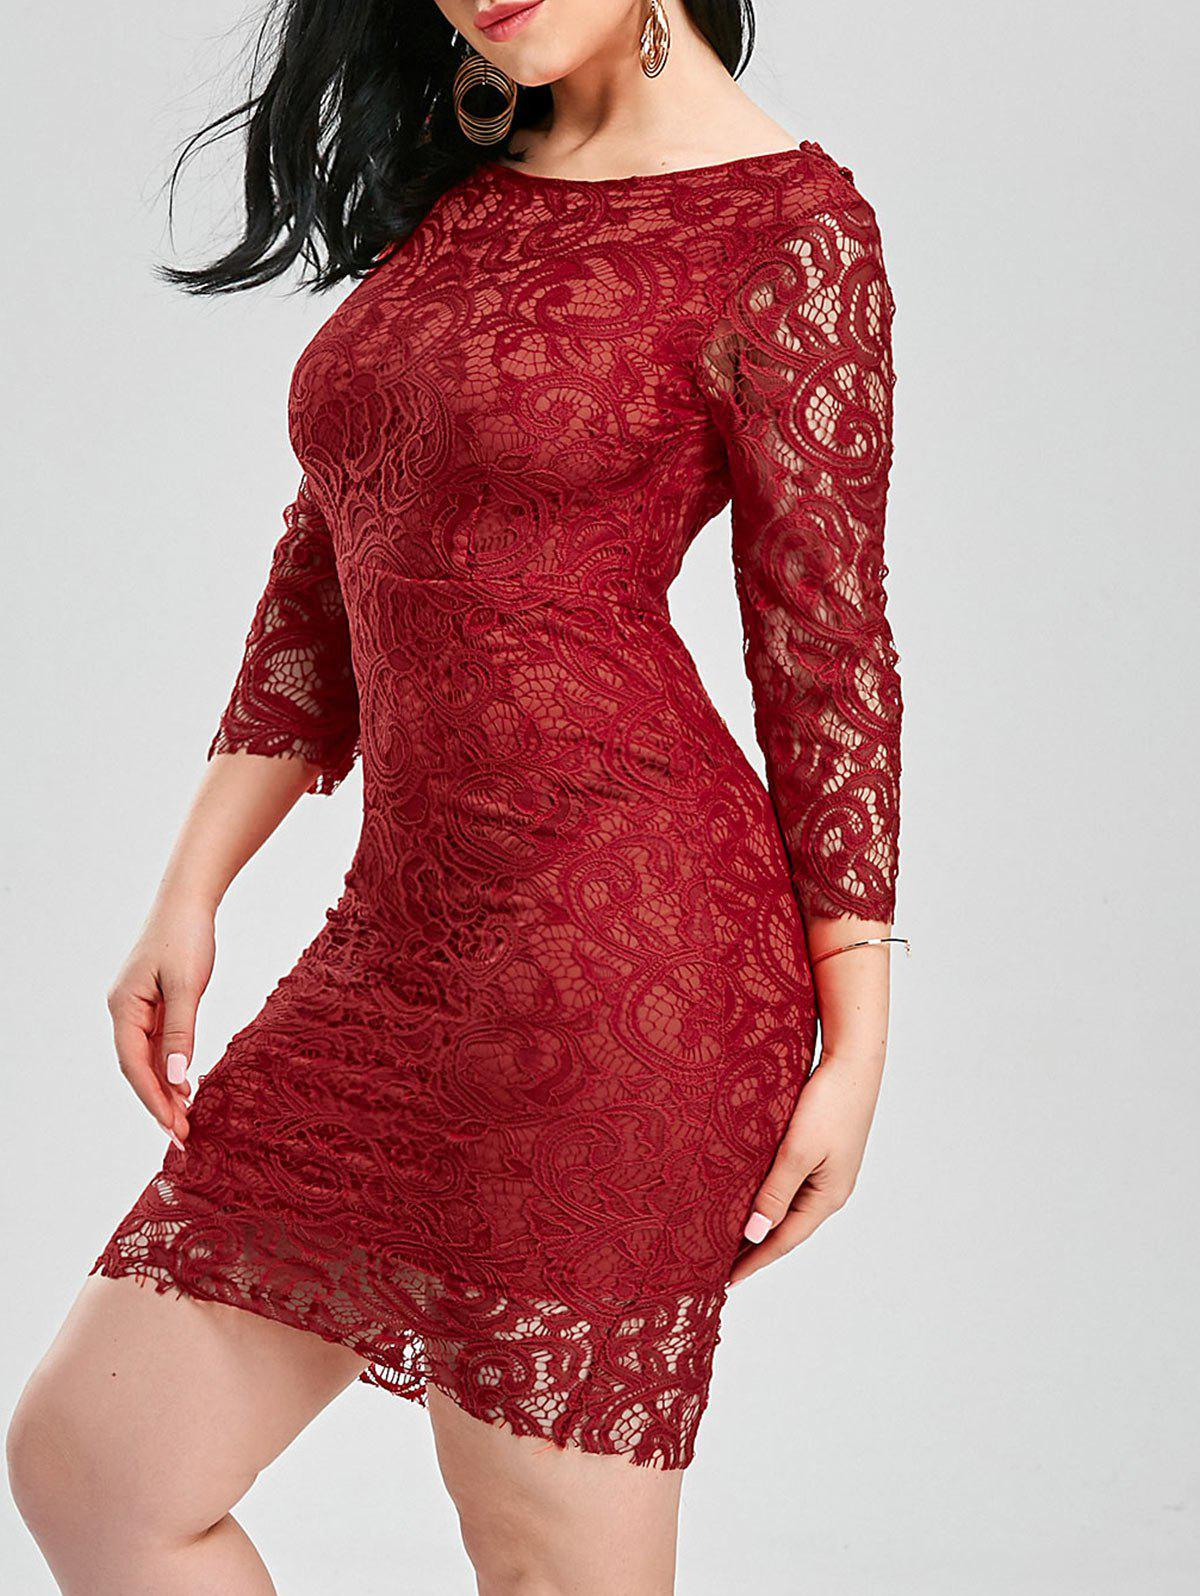 Slash Collar Backless Cut Out Lace Dress - Rouge L